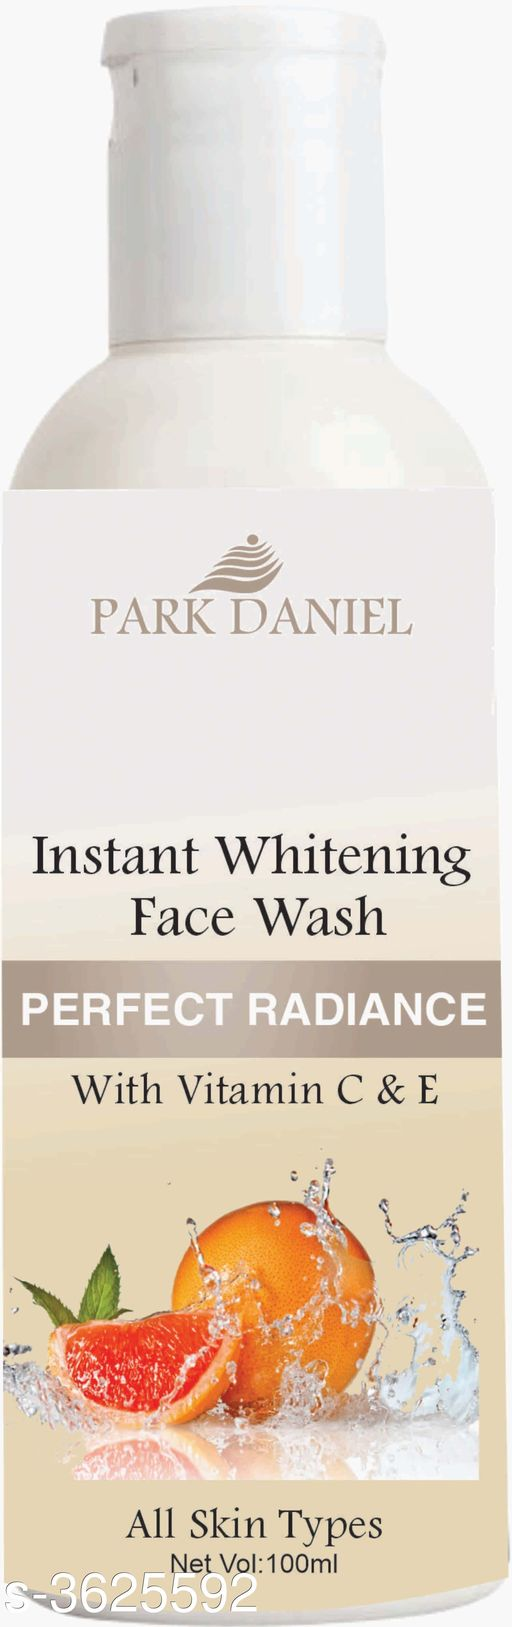 Face Instant Whitening Face Wash for Instant Face Whitening & Brightening(100 ml)   *Product Name* Instant Whitening Face Wash for Instant Face Whitening & Brightening(100 ml)  *Brand Name* Park Daniel  *Product Type* Face Wash  *Capacity* 100 ml  *Product Description*